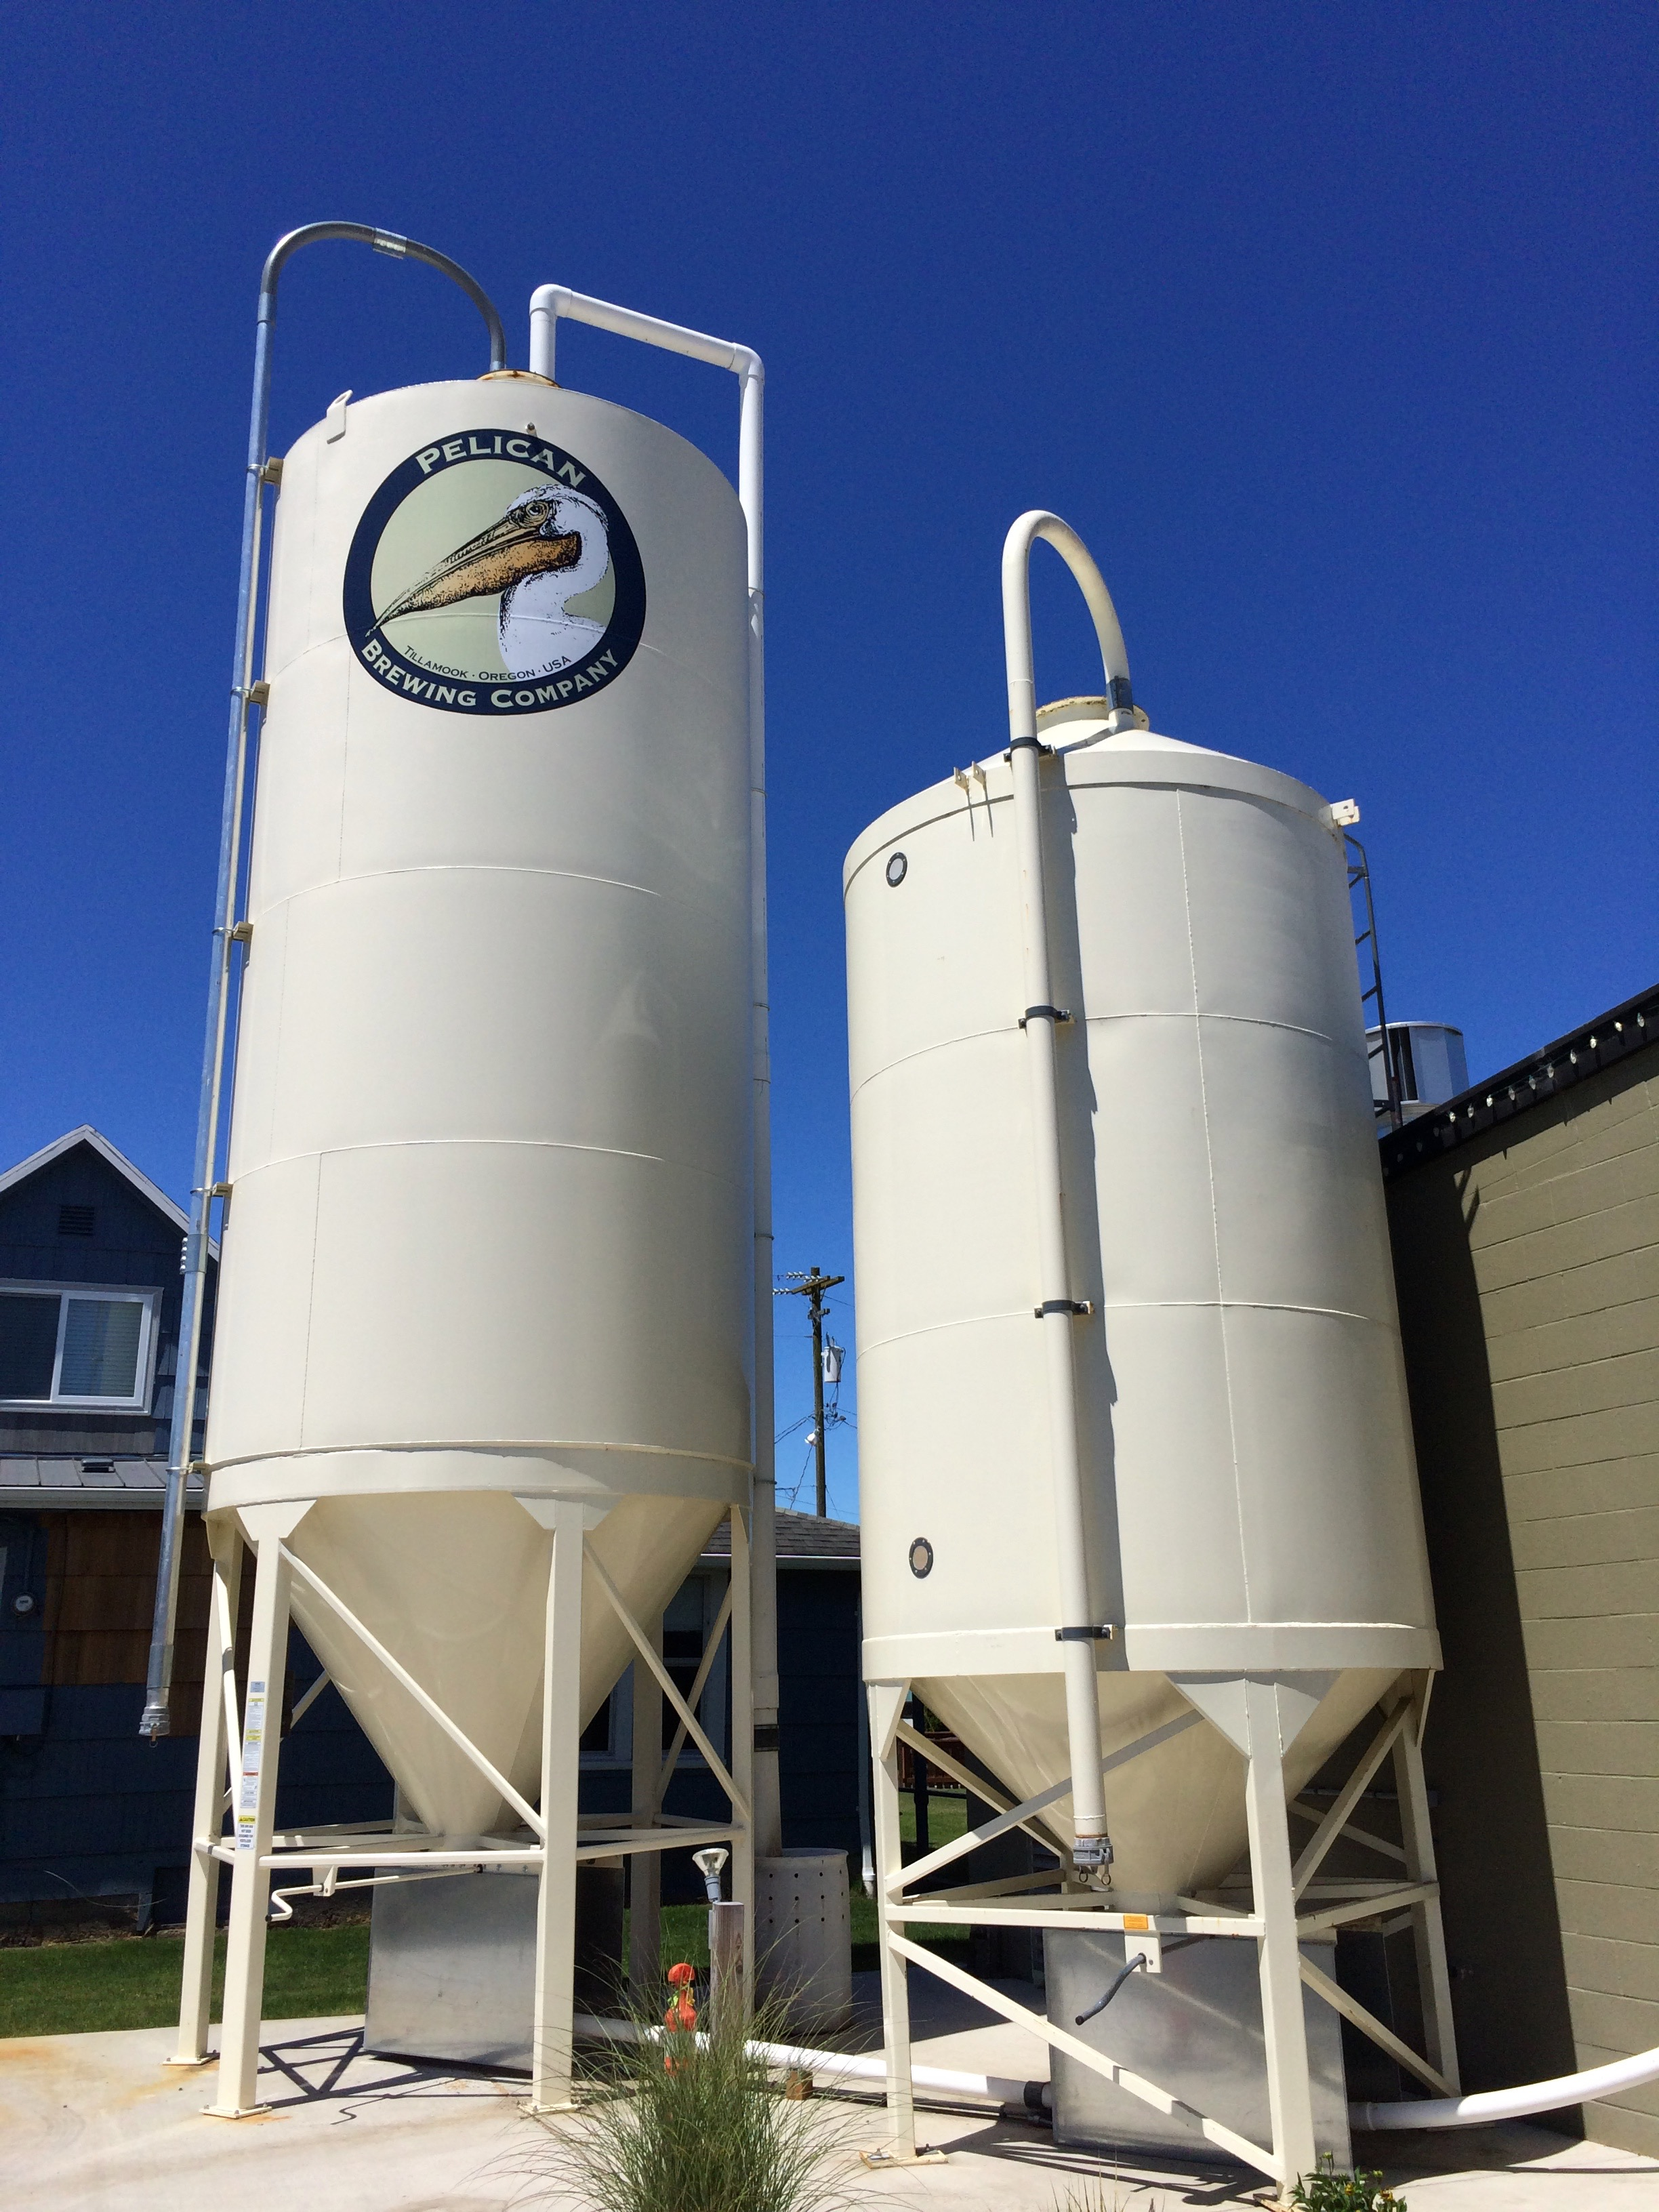 Grain silos at Pelican Brewing in Tillamook, Oregon.